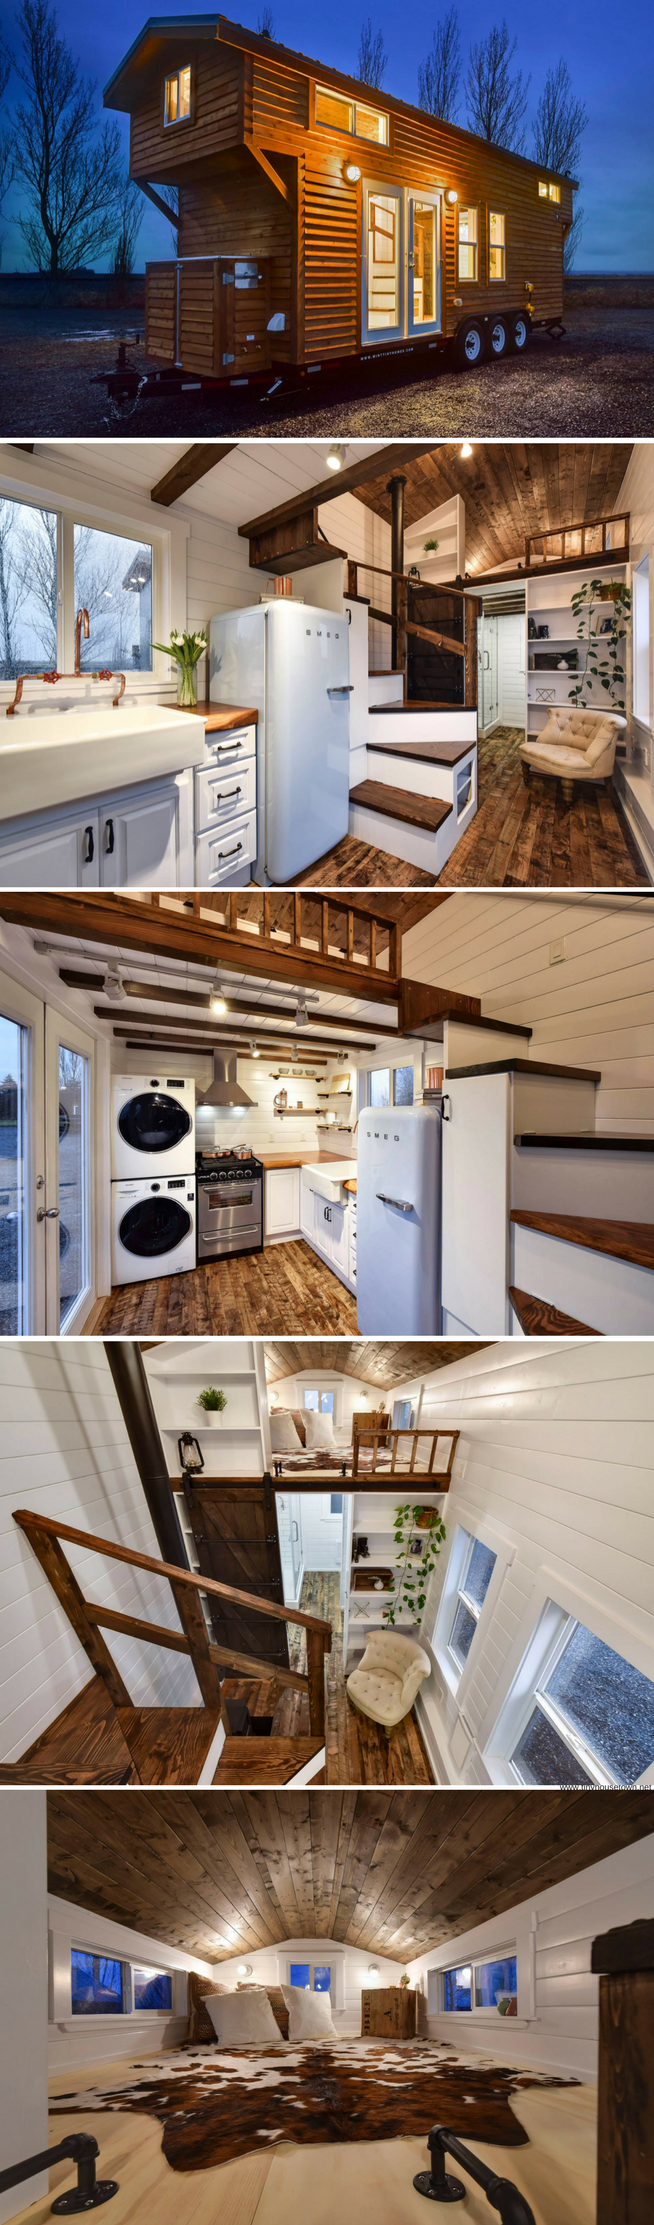 This Is A Tiny House On Wheels Built By Tiny Living Homes With A - Couple takes tiny house big adventure